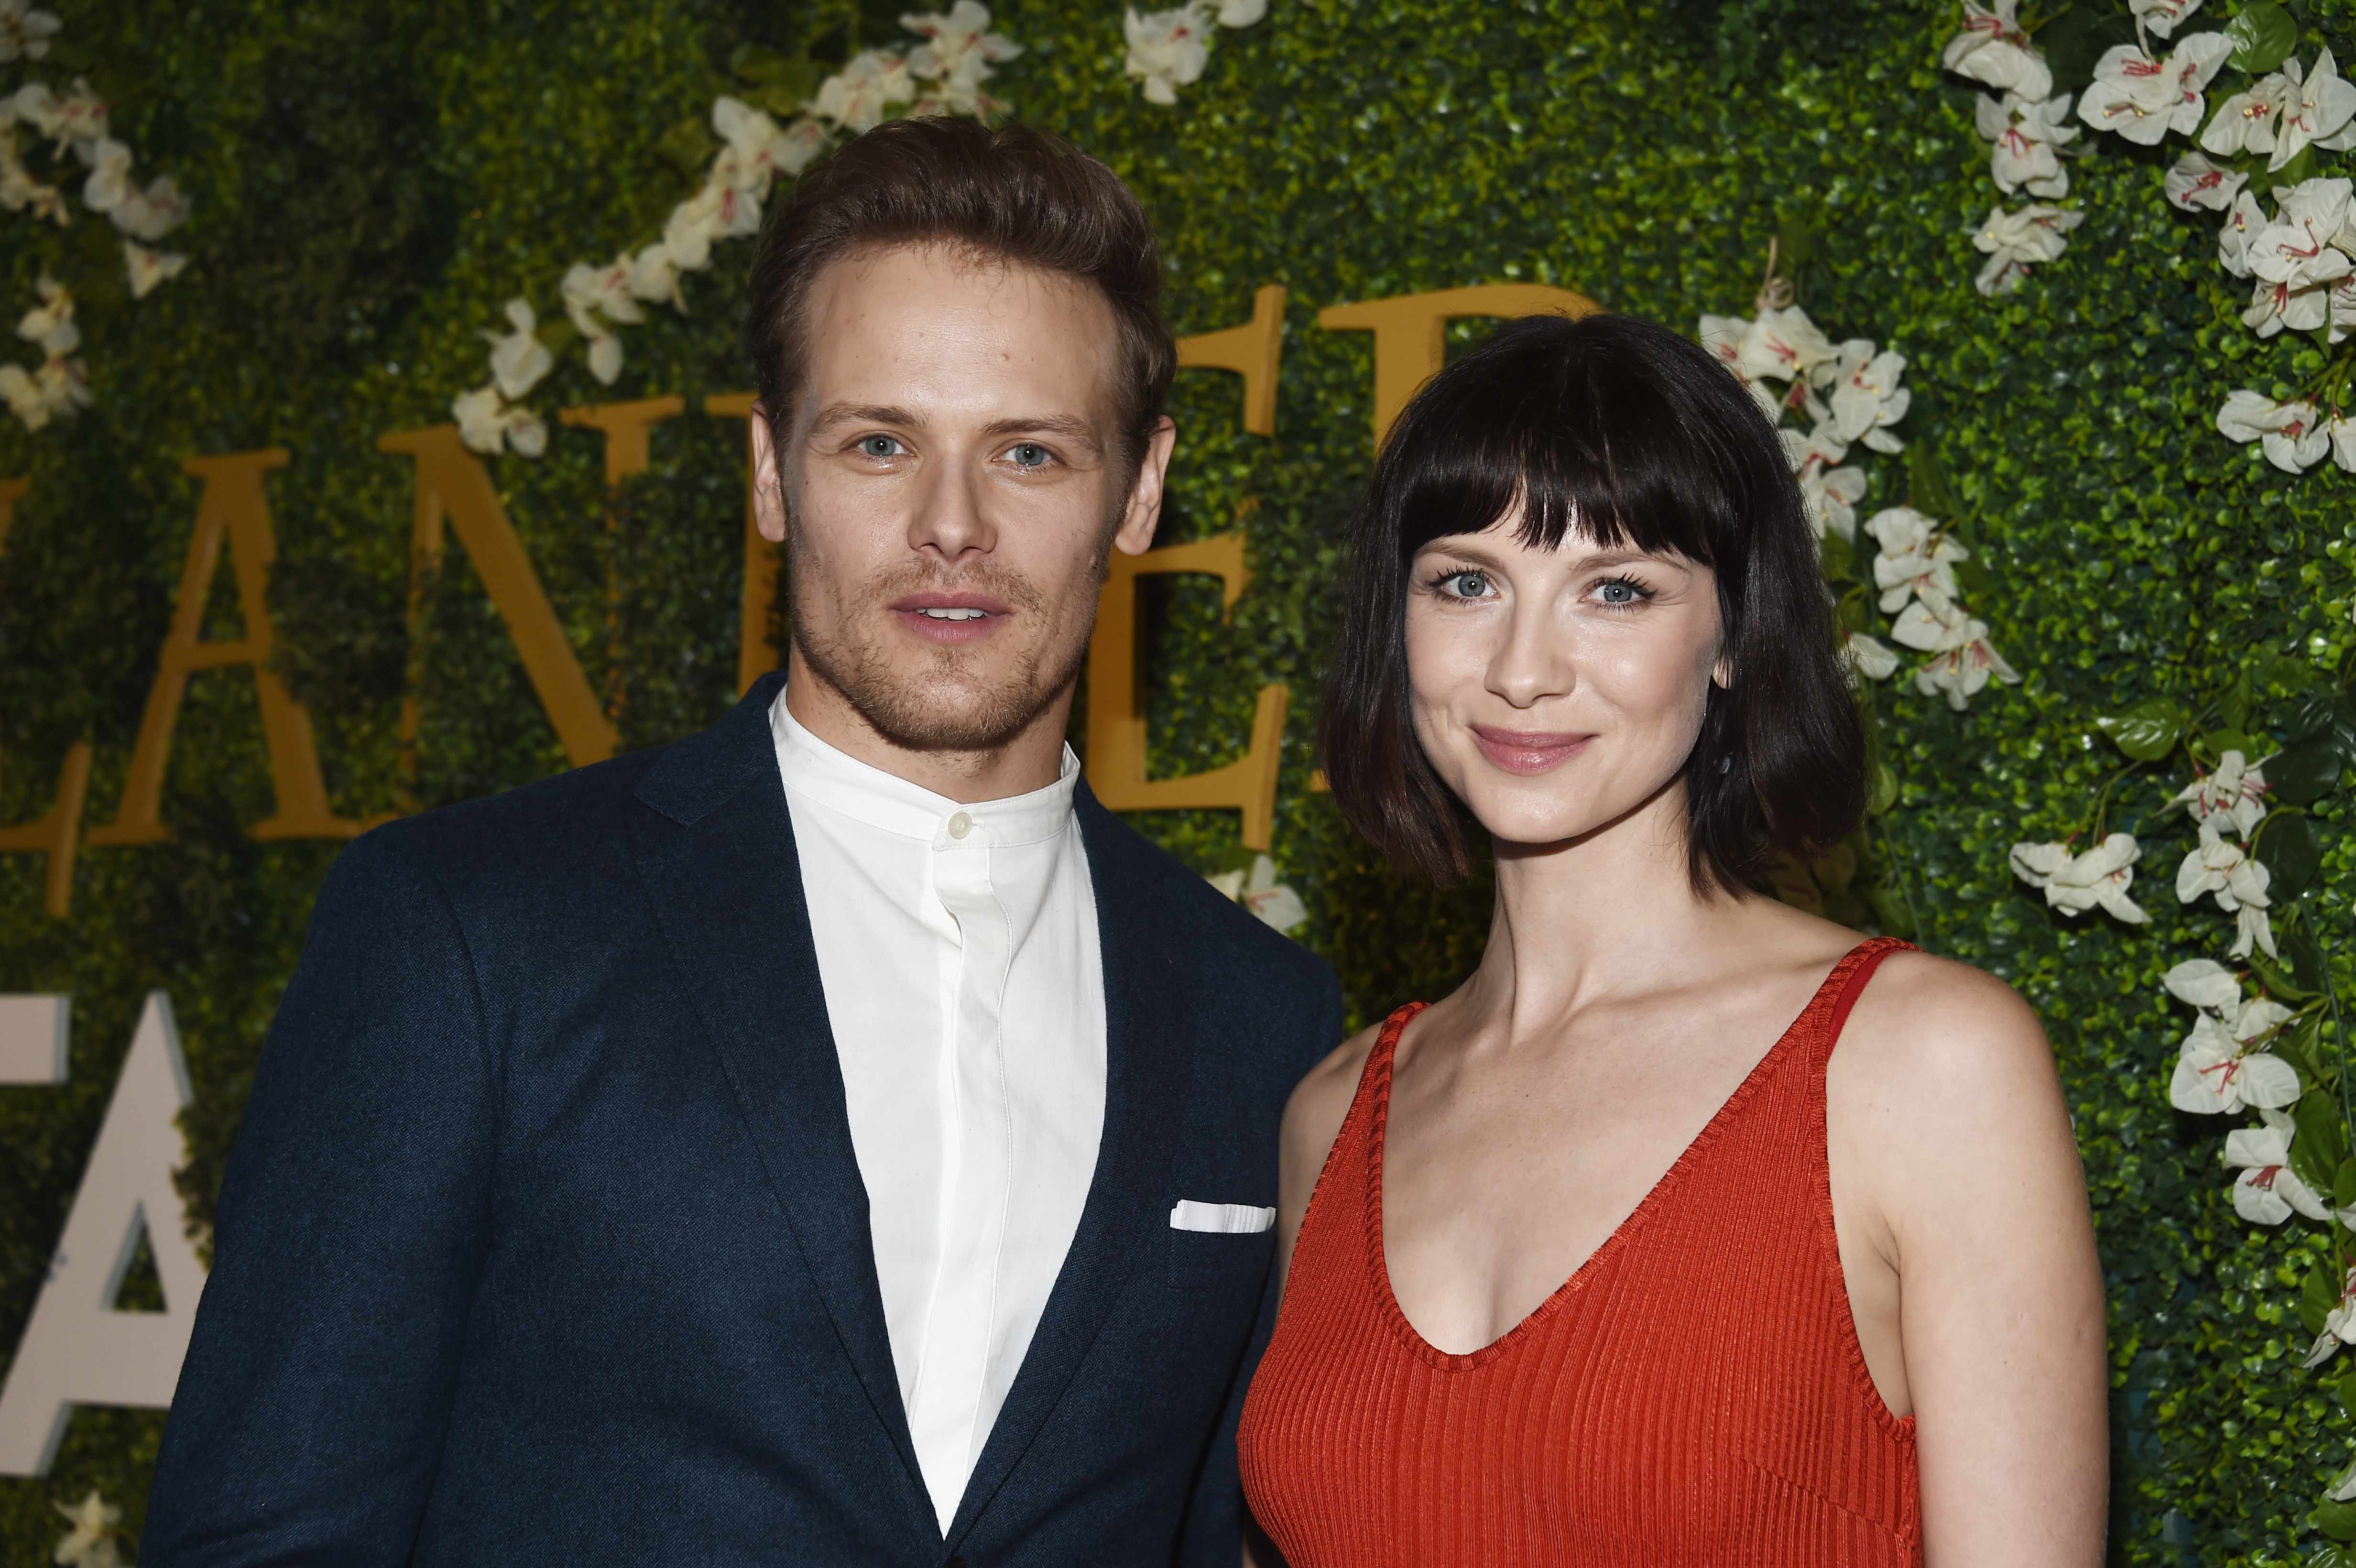 Outlander's Sam Heughan and Caitriona Balfe